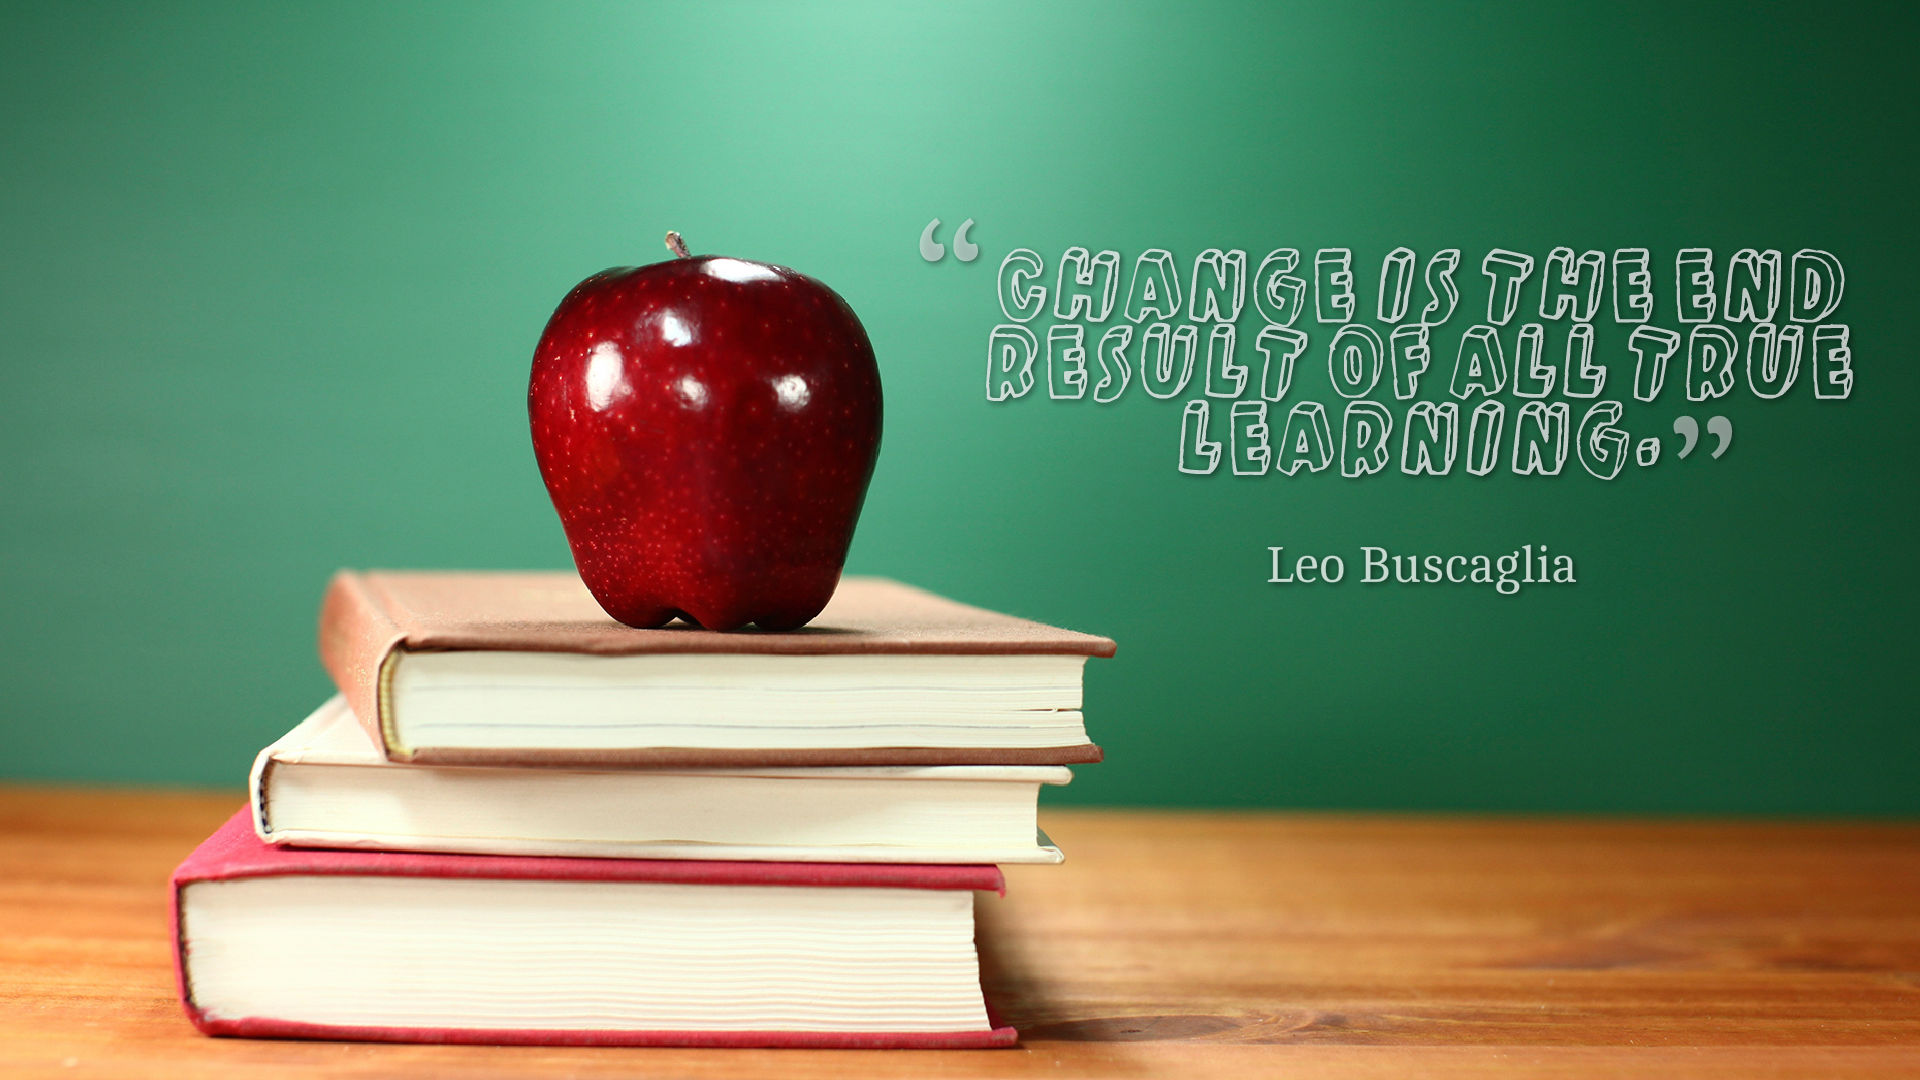 Learning Quotes Wallpaper - Shiny Apple For The Teacher - HD Wallpaper